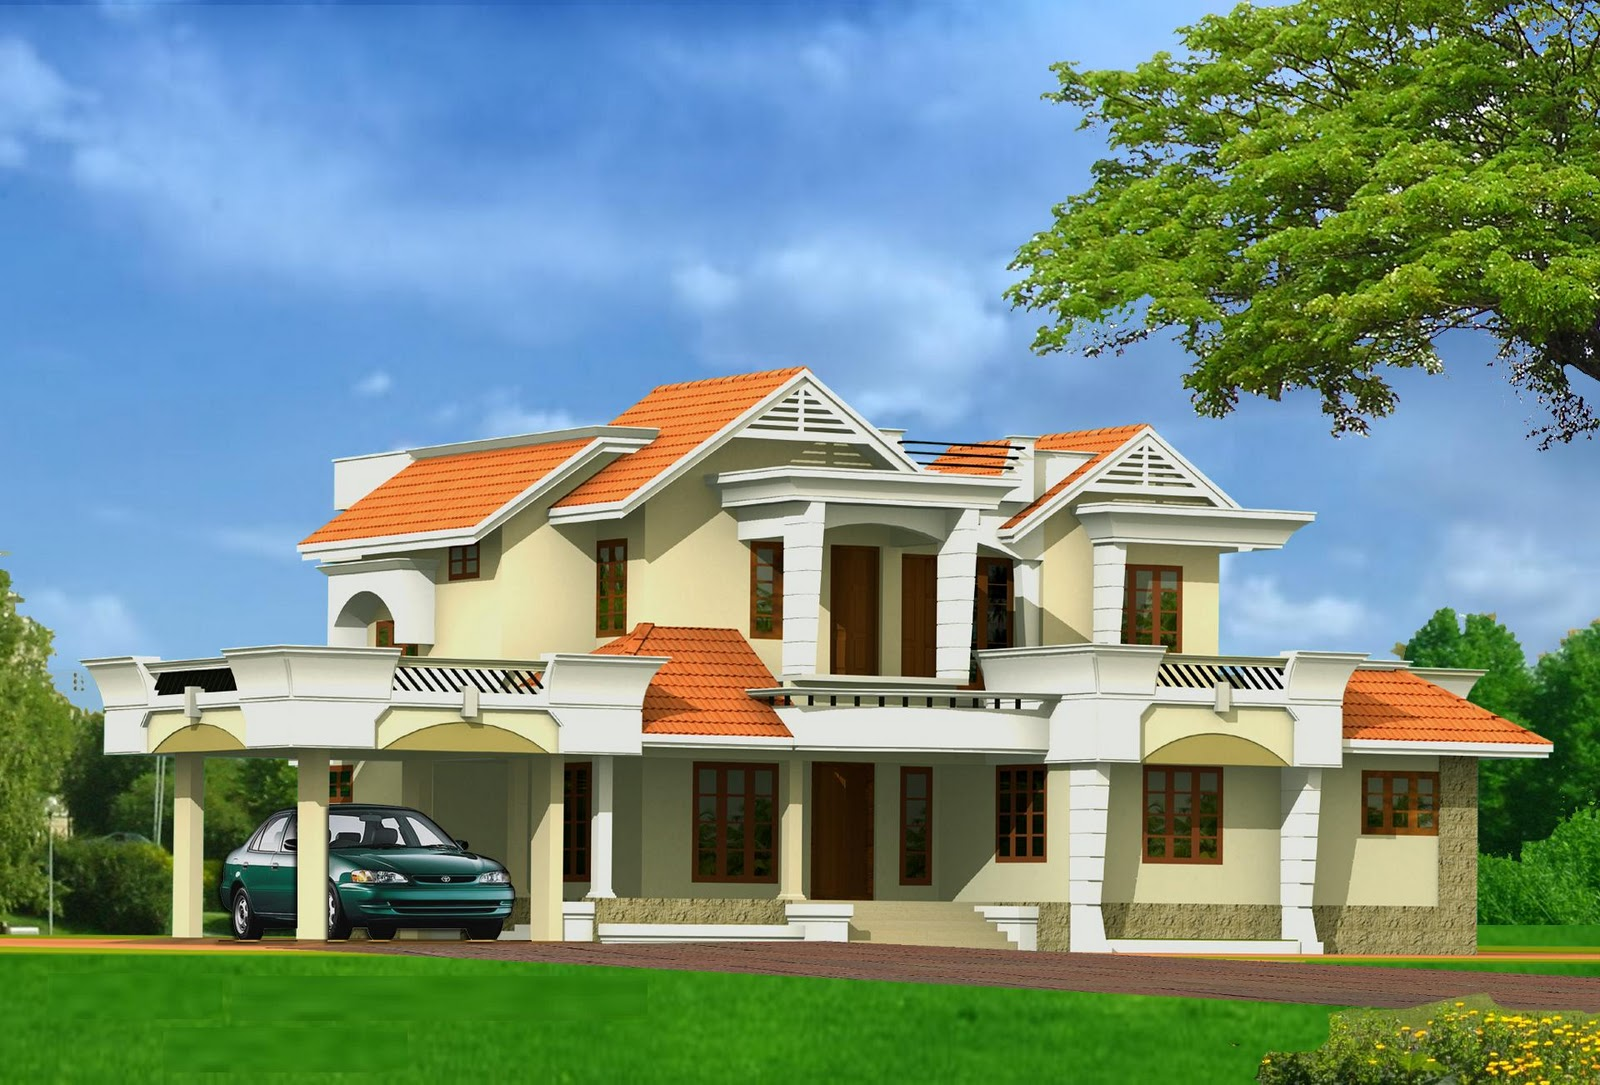 House plans and design architectural designs of for House construction design